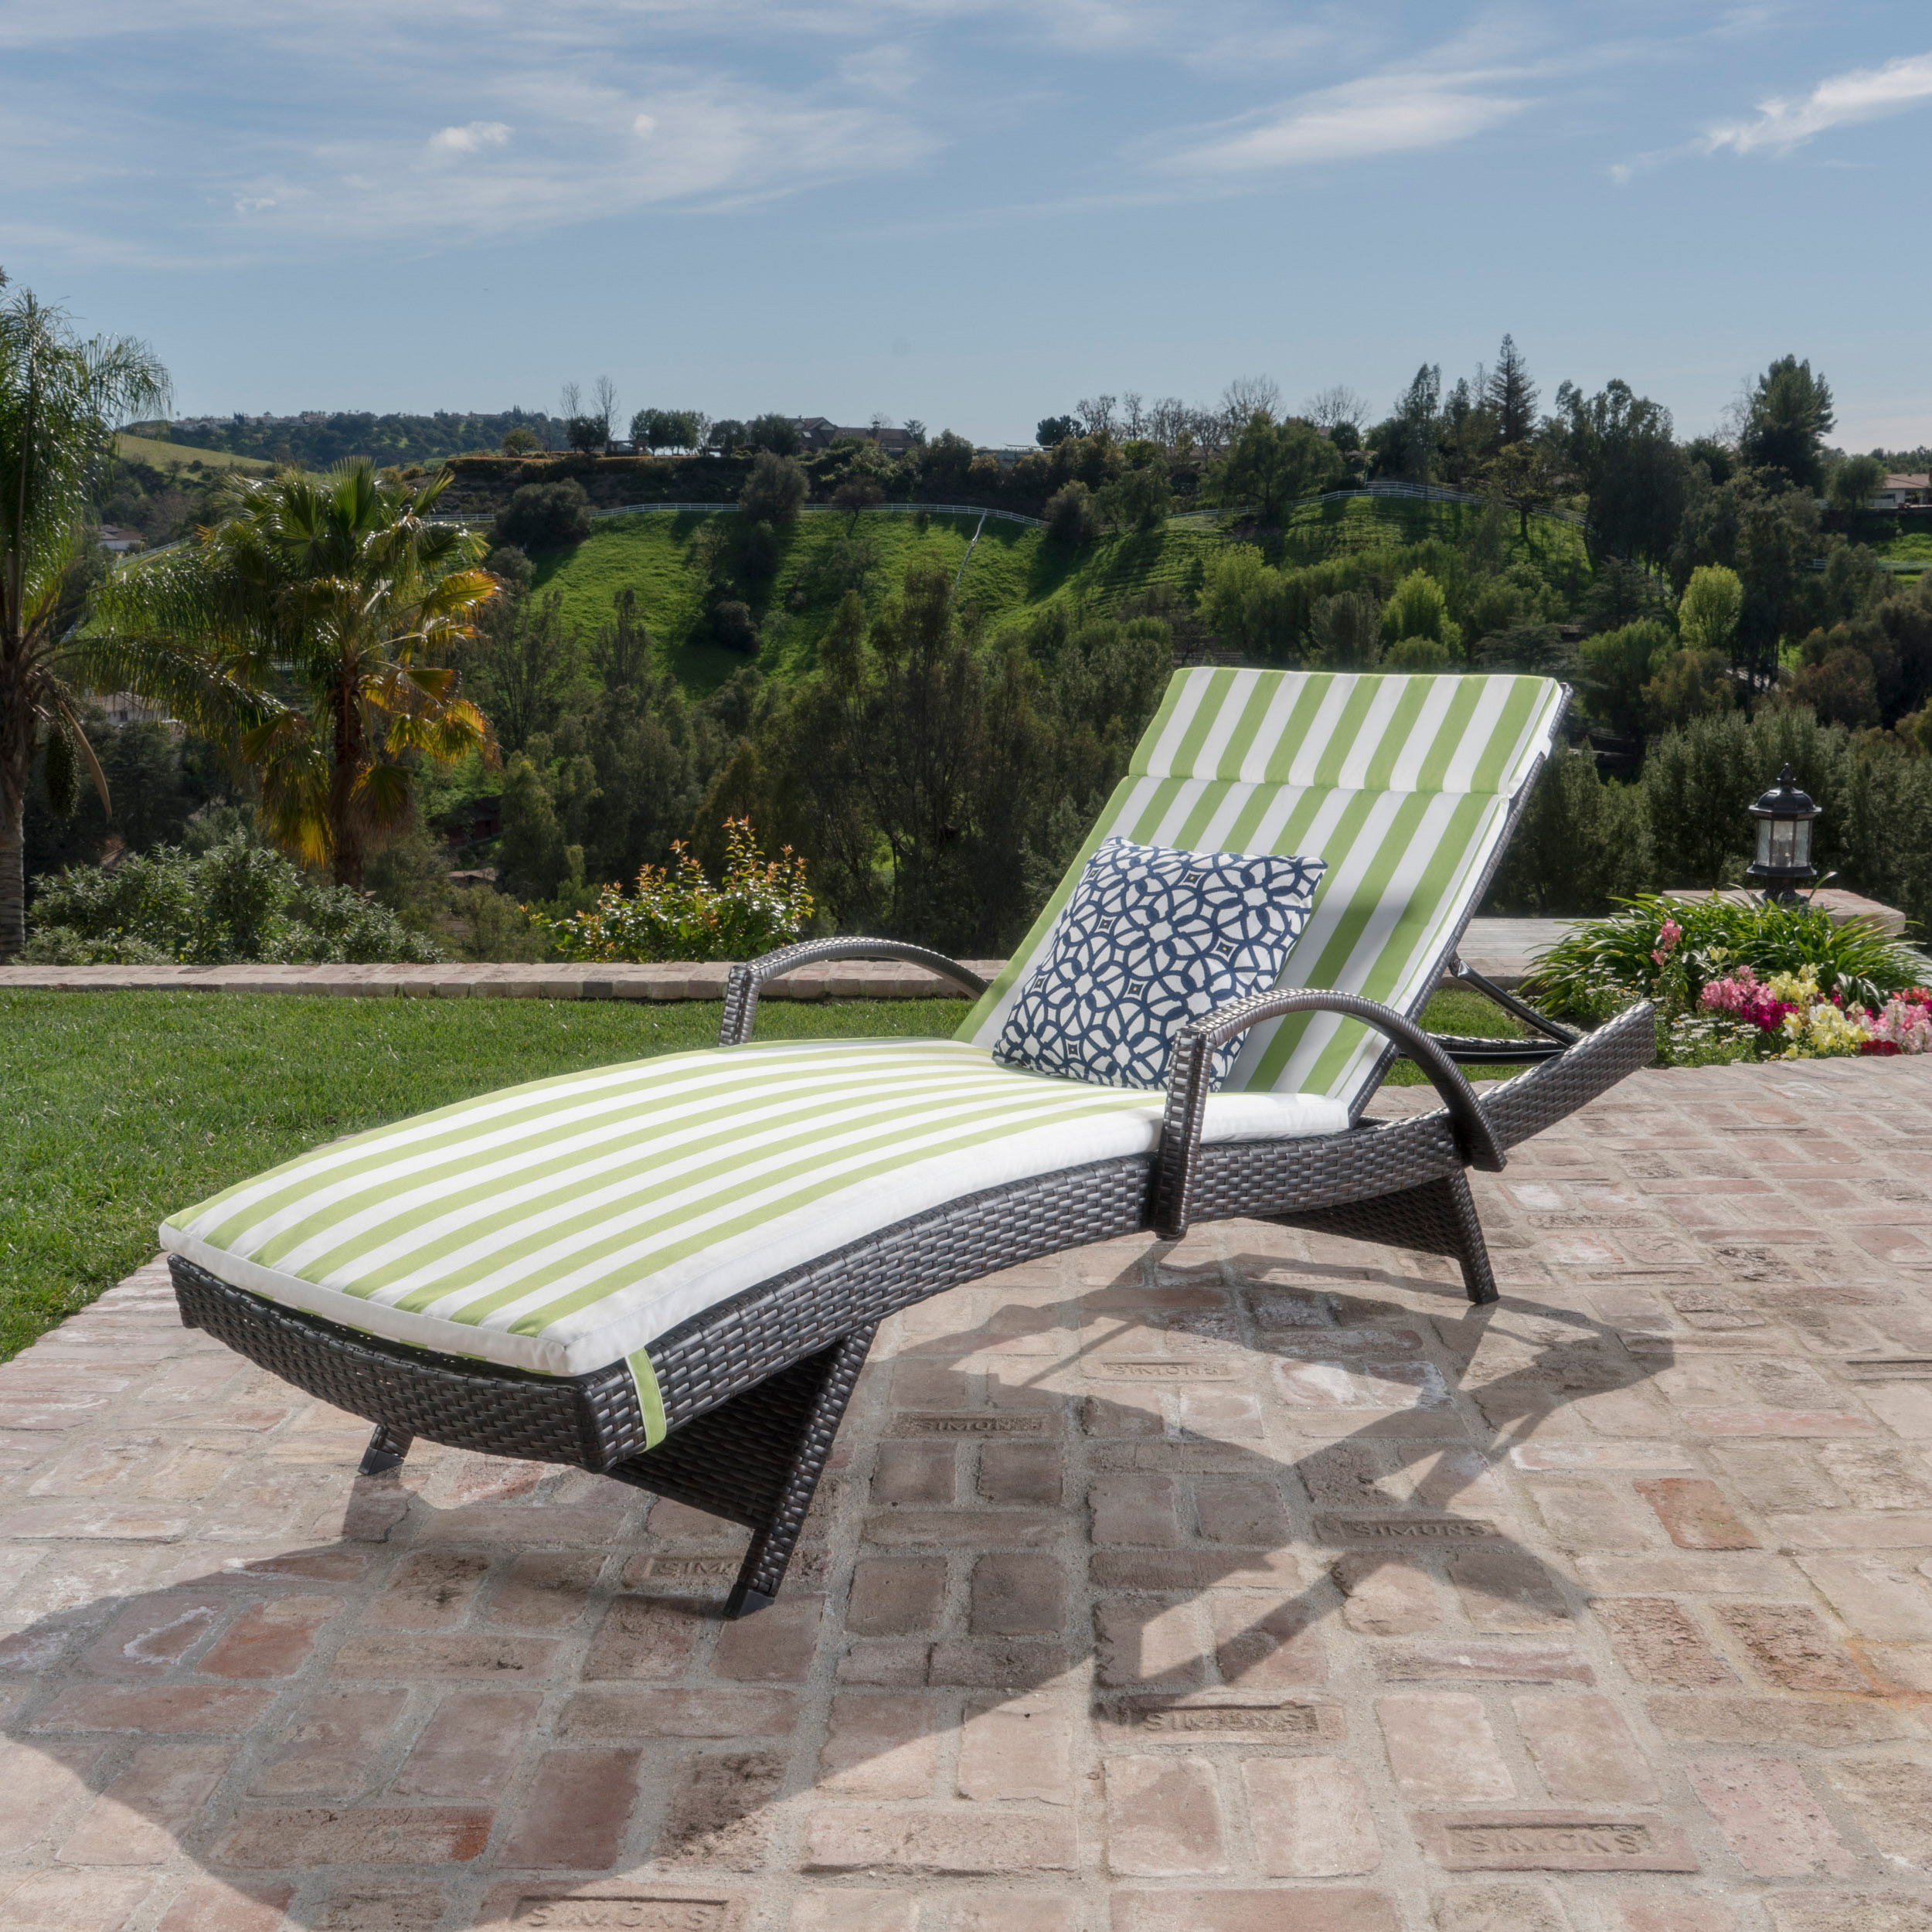 Anthony Outdoor Wicker Lounge with Arms with Cushion, Multibrown, Green and White Stripe